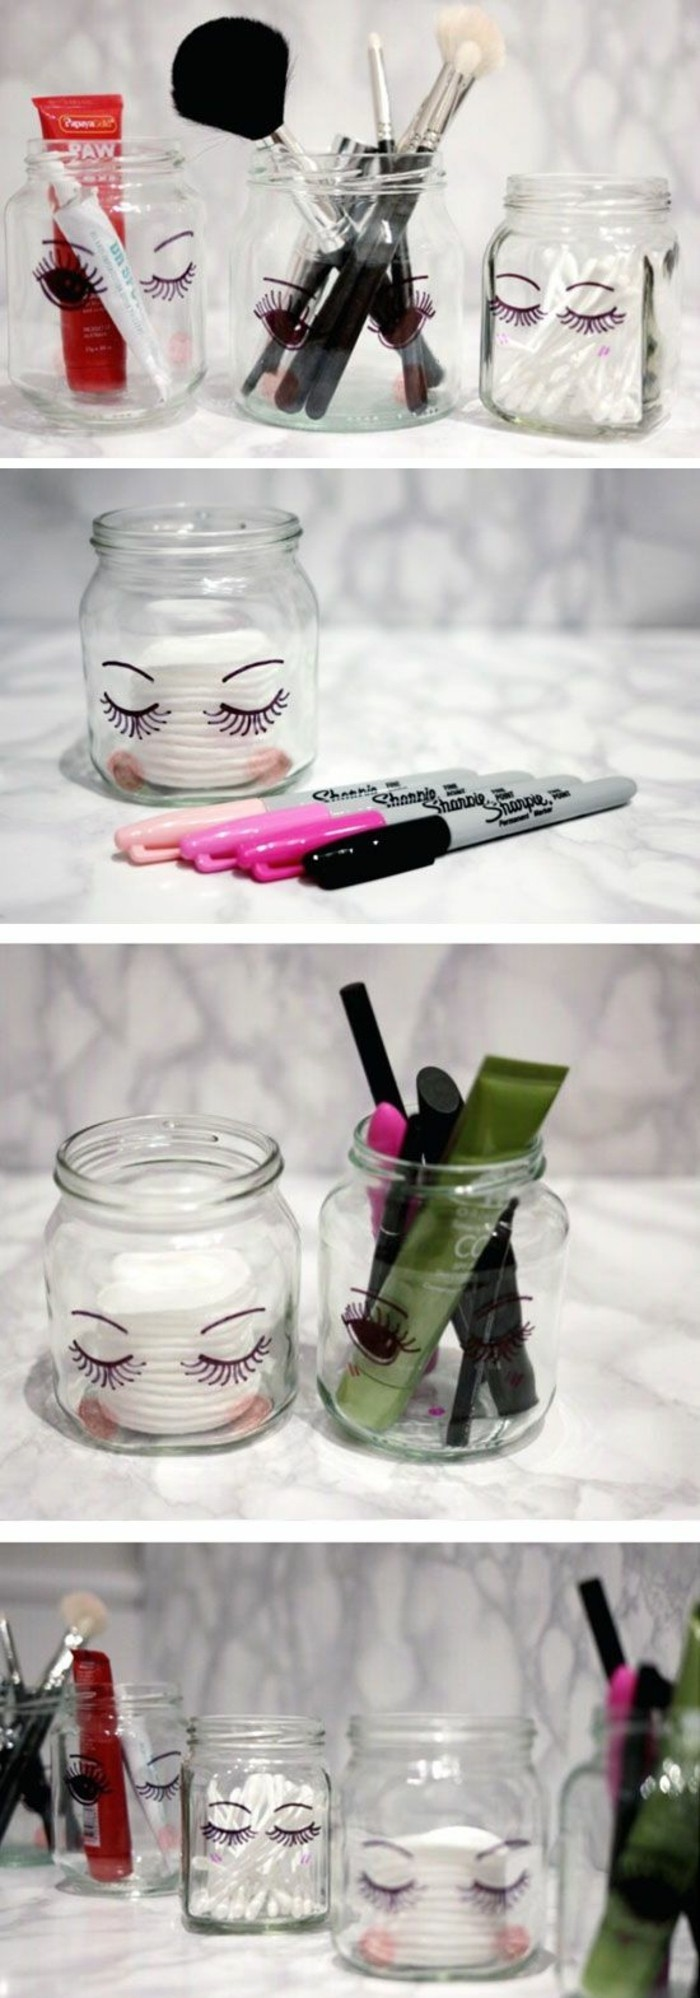 52 id es de rangement make up en photos et vid os for Pinterest cuisine noel